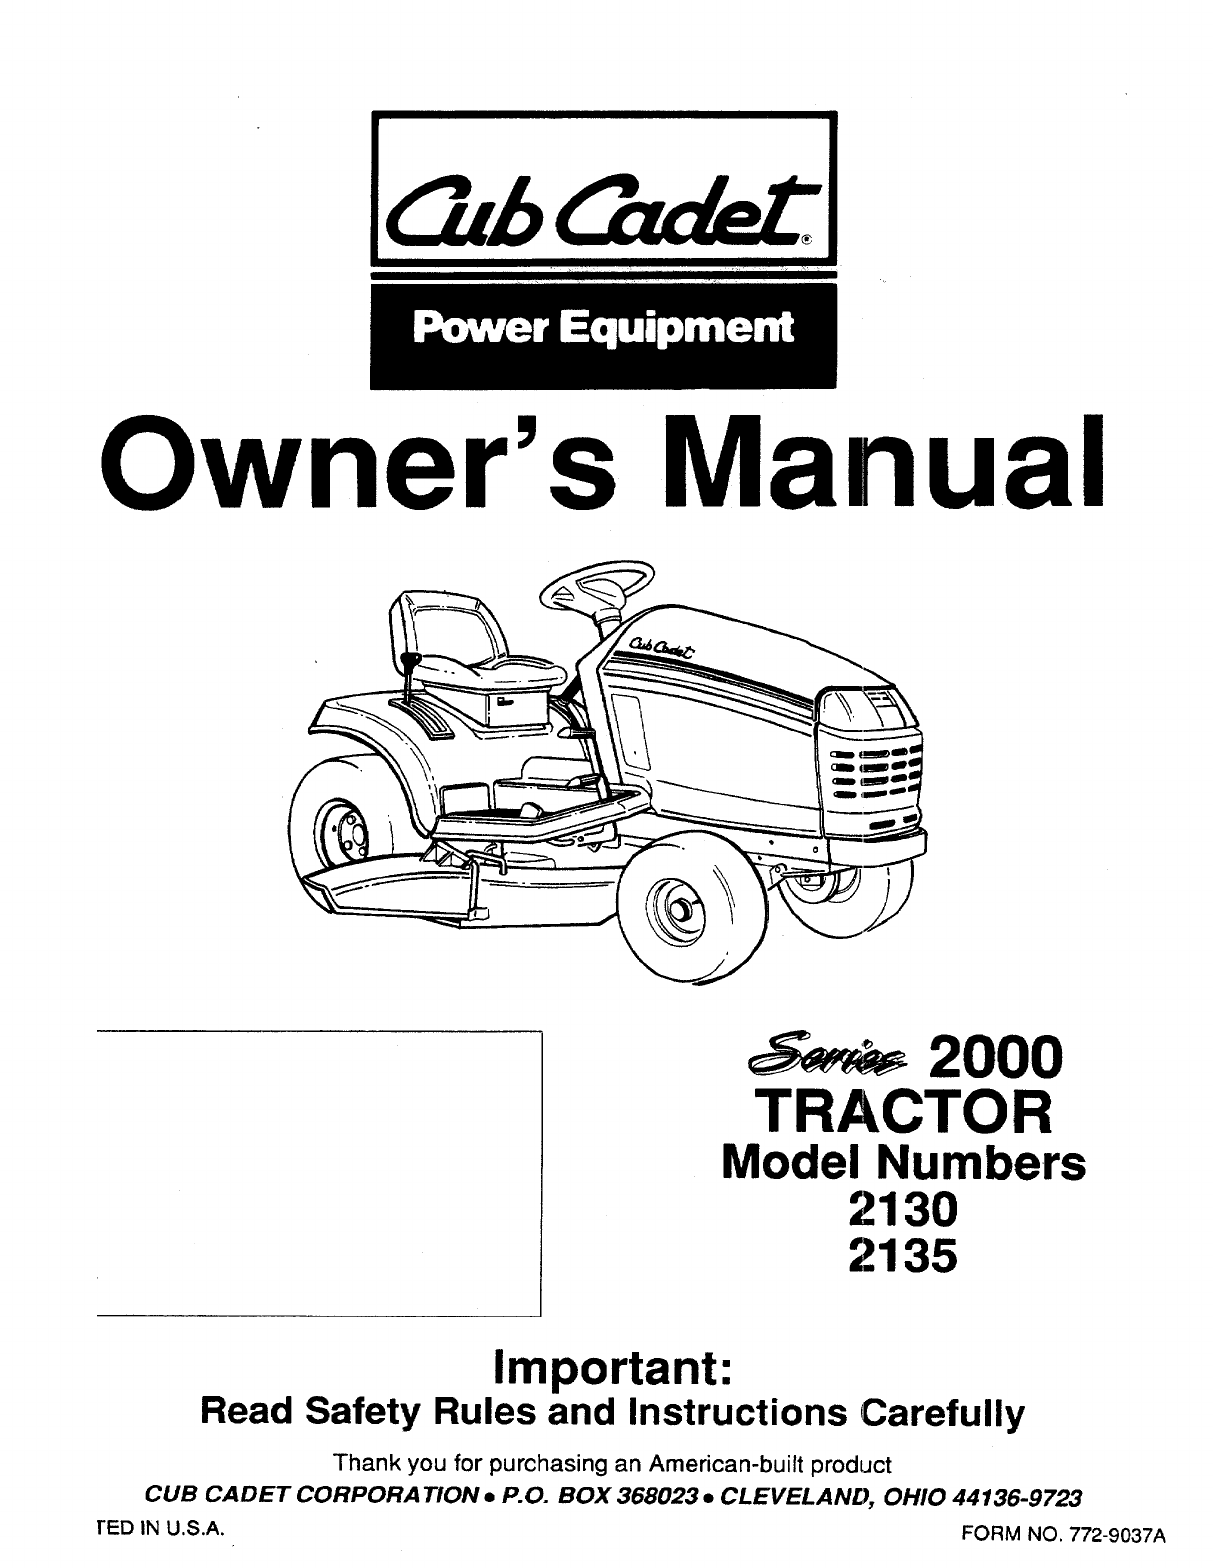 e345c7b4 52b0 3904 4d4c a2faabda8527 bg1 wiring diagram for cub cadet 149 the wiring diagram readingrat net cub cadet series 2000 wiring diagram at readyjetset.co